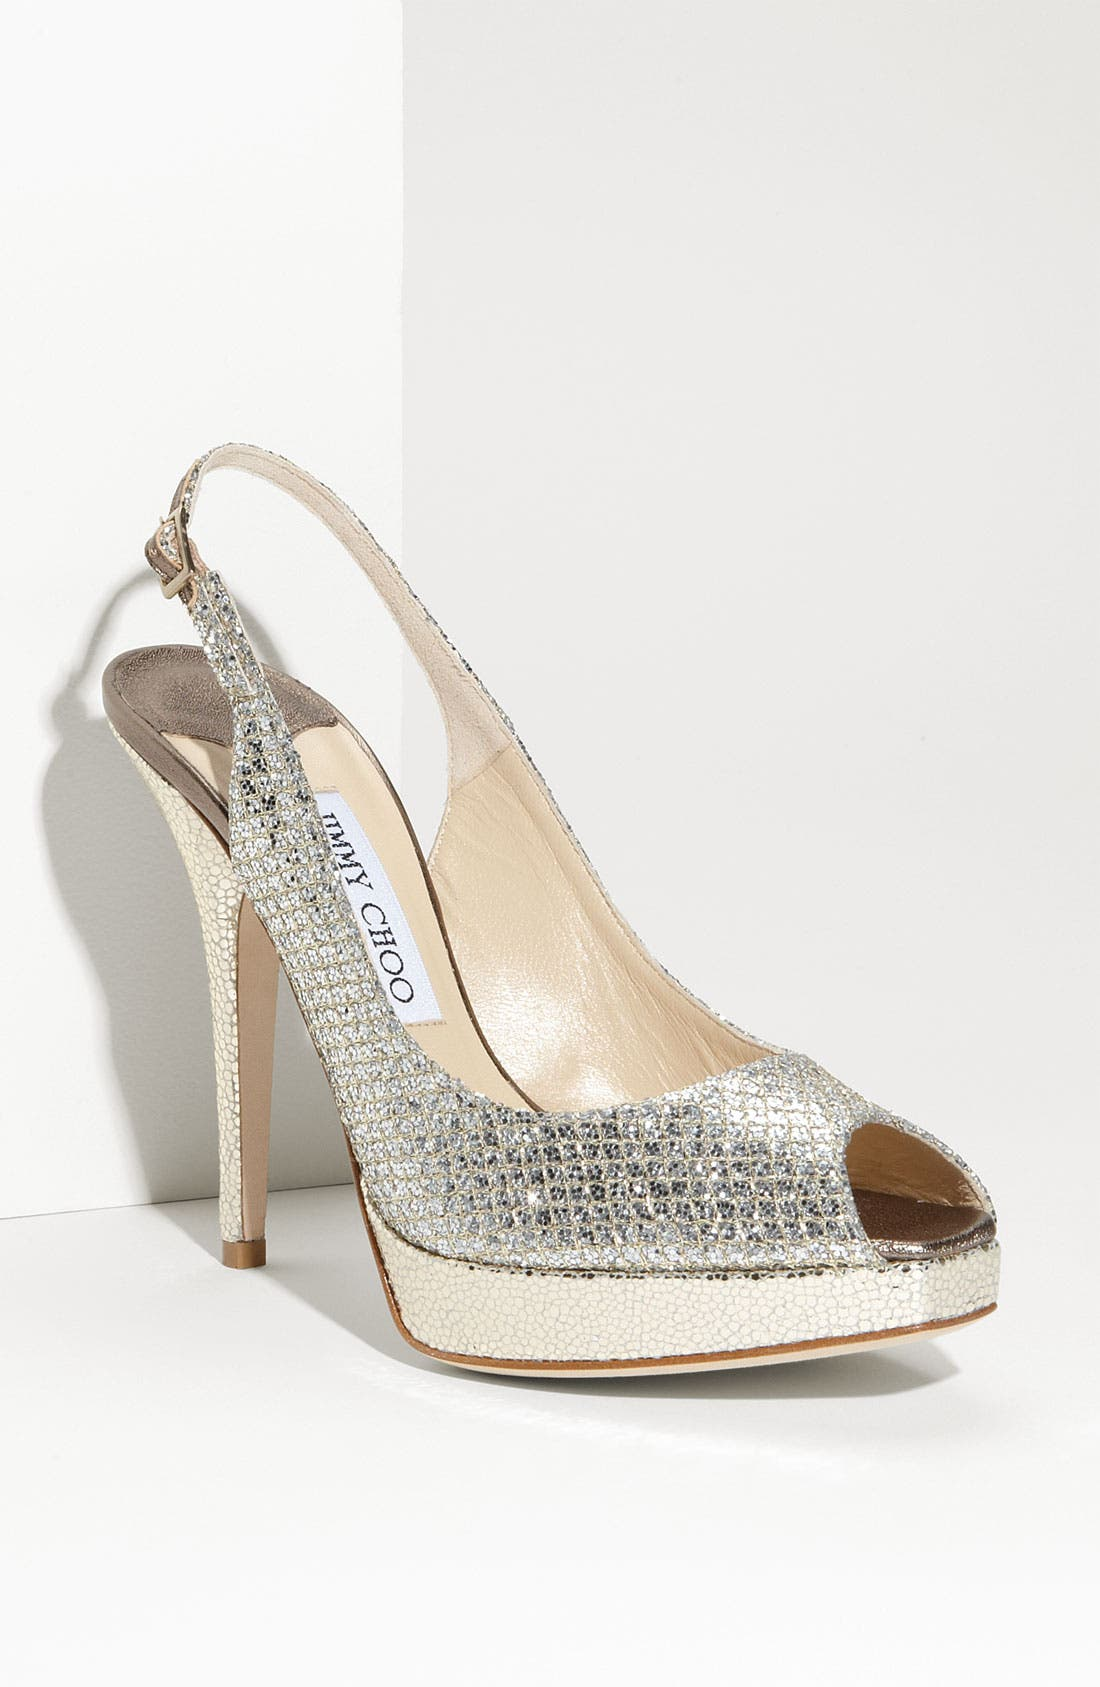 Alternate Image 1 Selected - Jimmy Choo 'Clue' Glitter Slingback Pump (Nordstrom Exclusive Color)